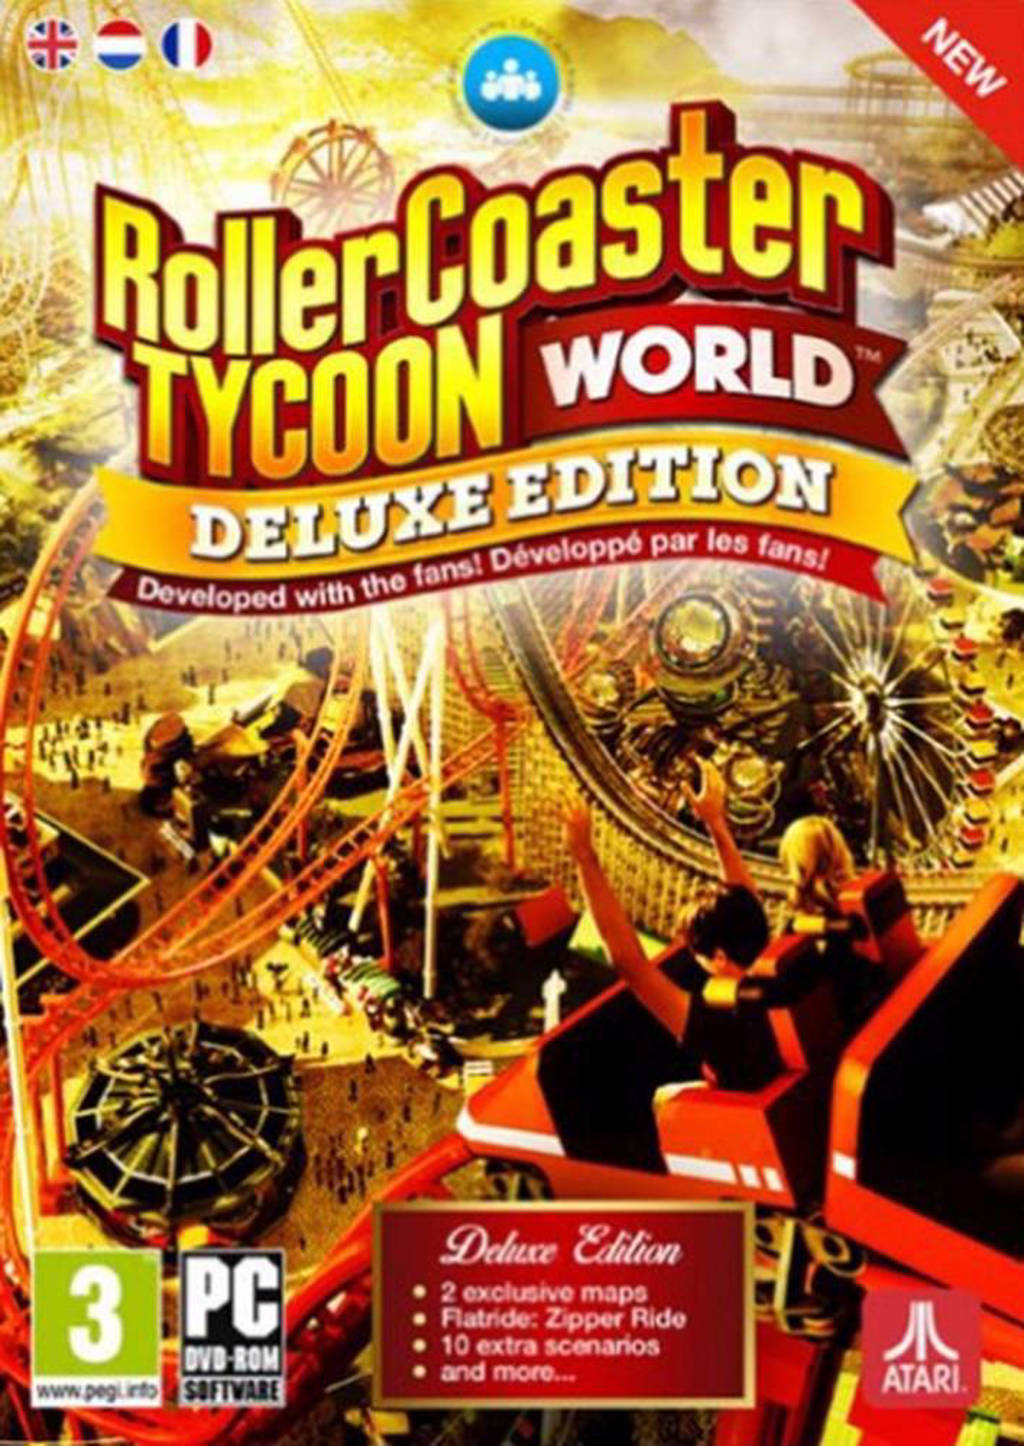 Rollercoaster tycoon world (Deluxe edition) (PC)